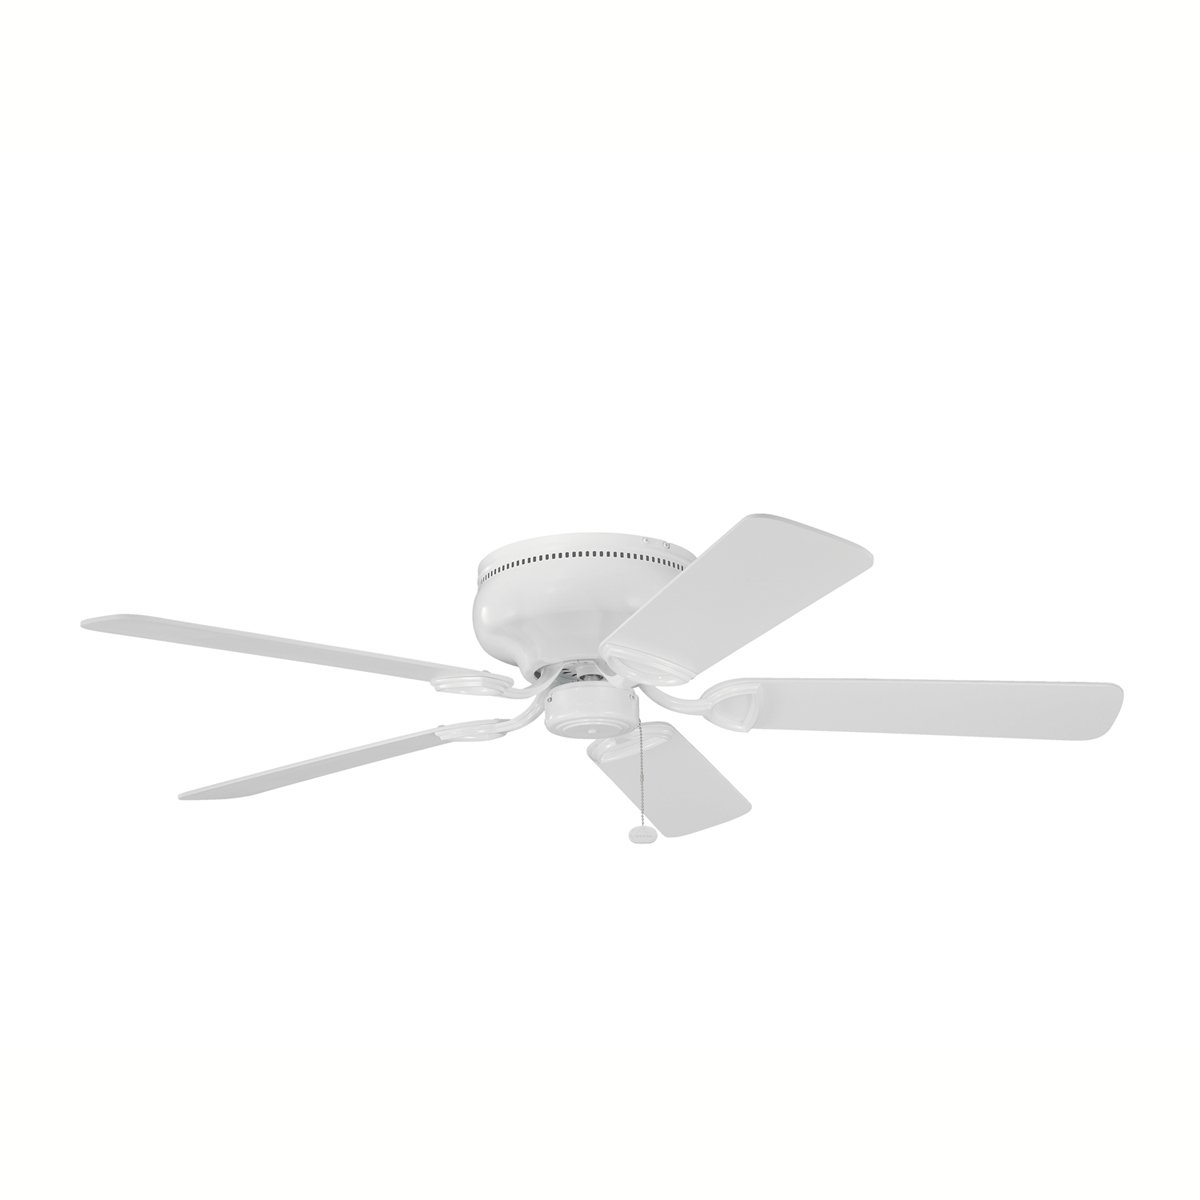 Kichler 339017wh 42 ceiling fan amazon mozeypictures Gallery